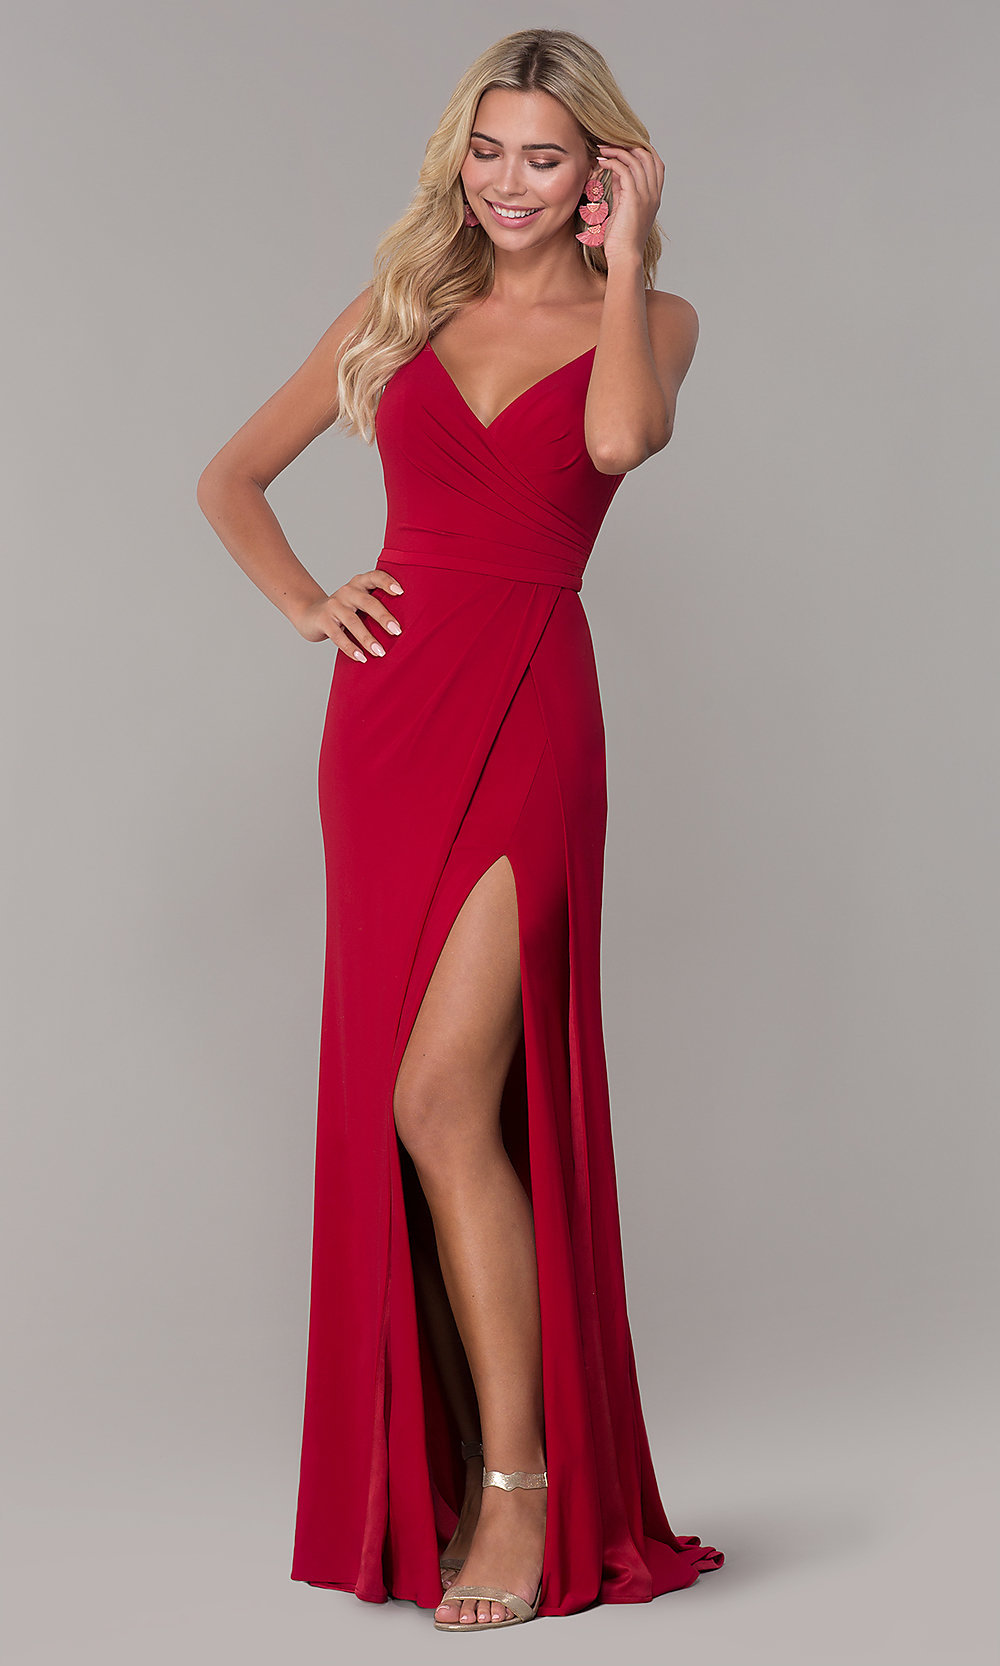 dbdc8c5f850 V-Neck Dave and Johnny Prom Dress with Slit - PromGirl